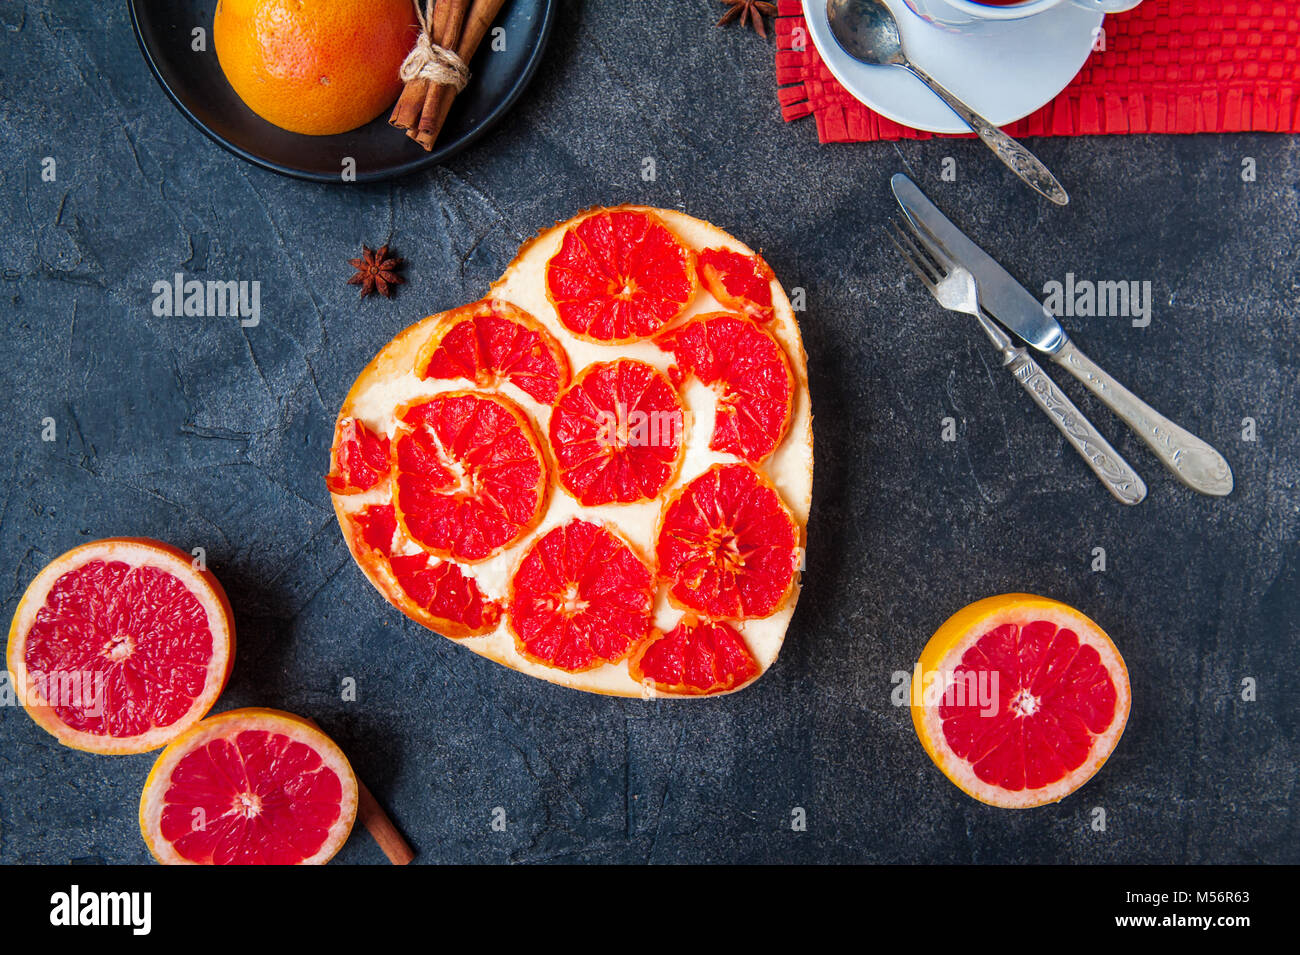 Top view Baked cheesecake with red grapefruit slices in the shape of heart on the black stone background with ingredients - Stock Image